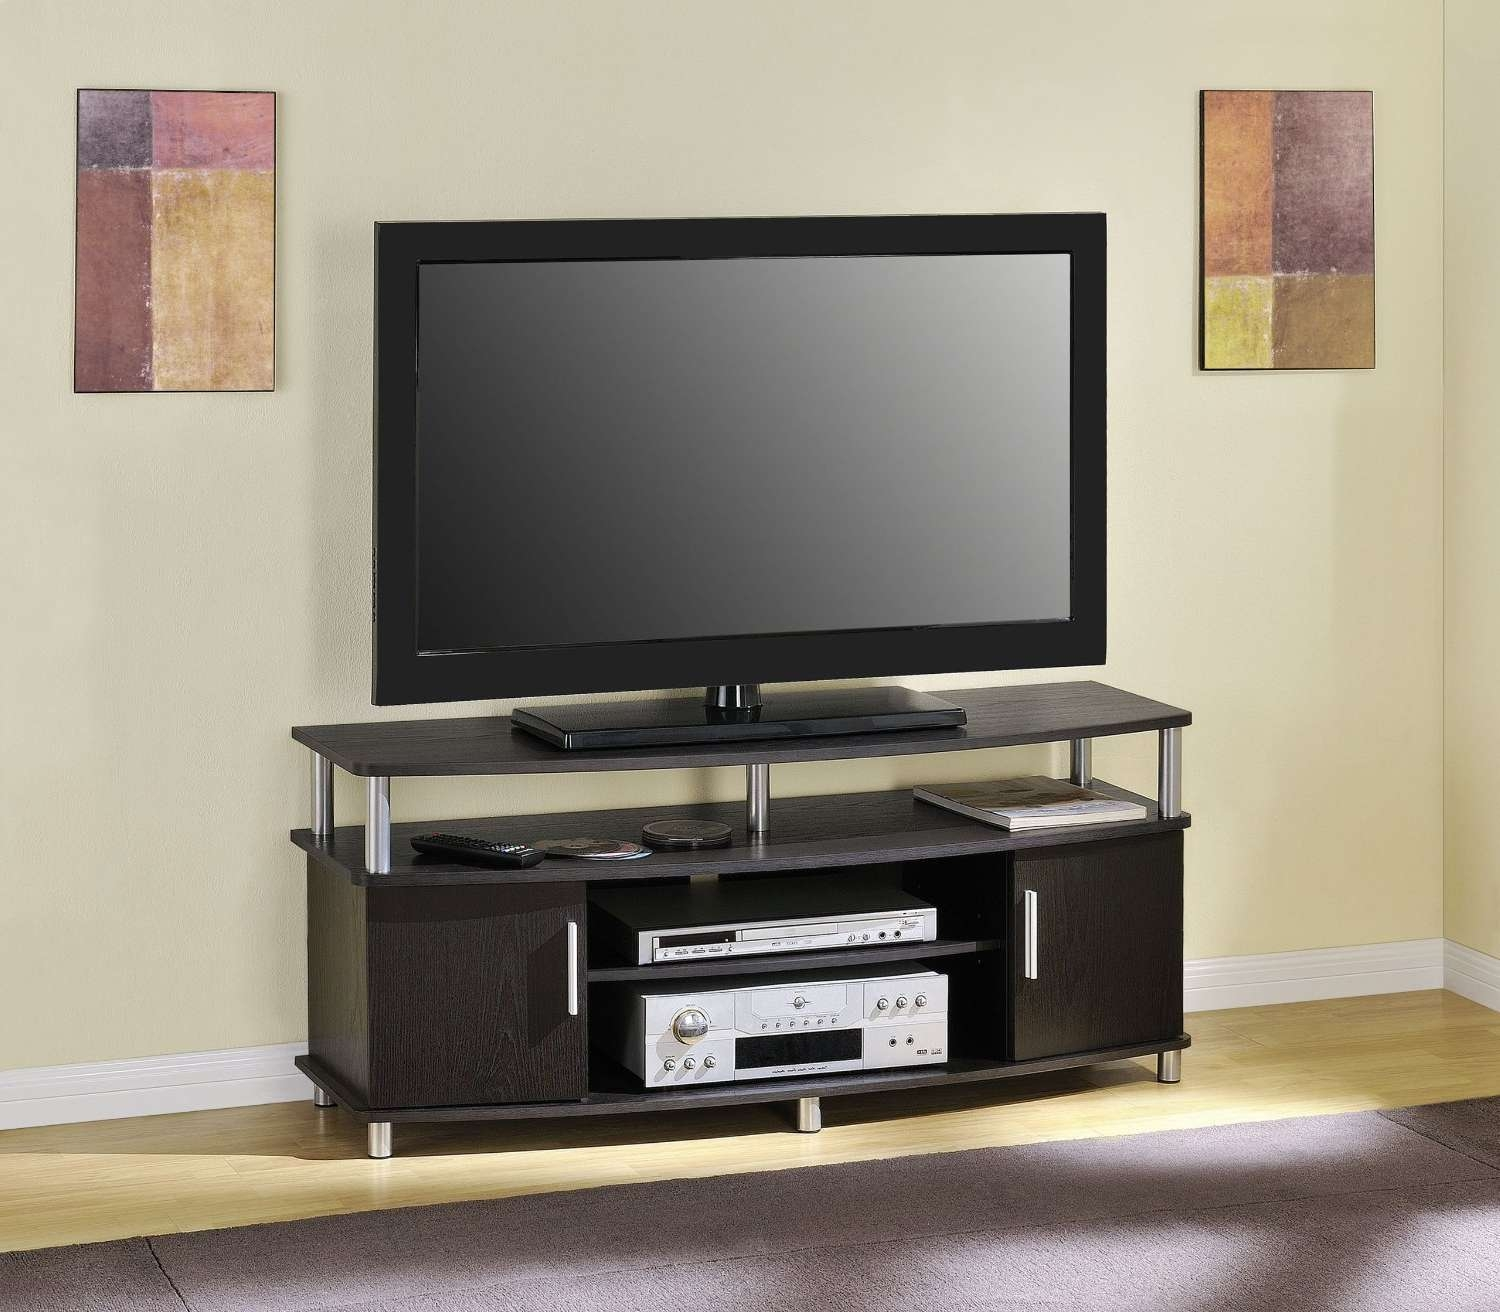 Black Lacquered Oak Wood Media Cabinet Decor With Chromed Metal Within Modern Tv Stands For Flat Screens (View 2 of 15)